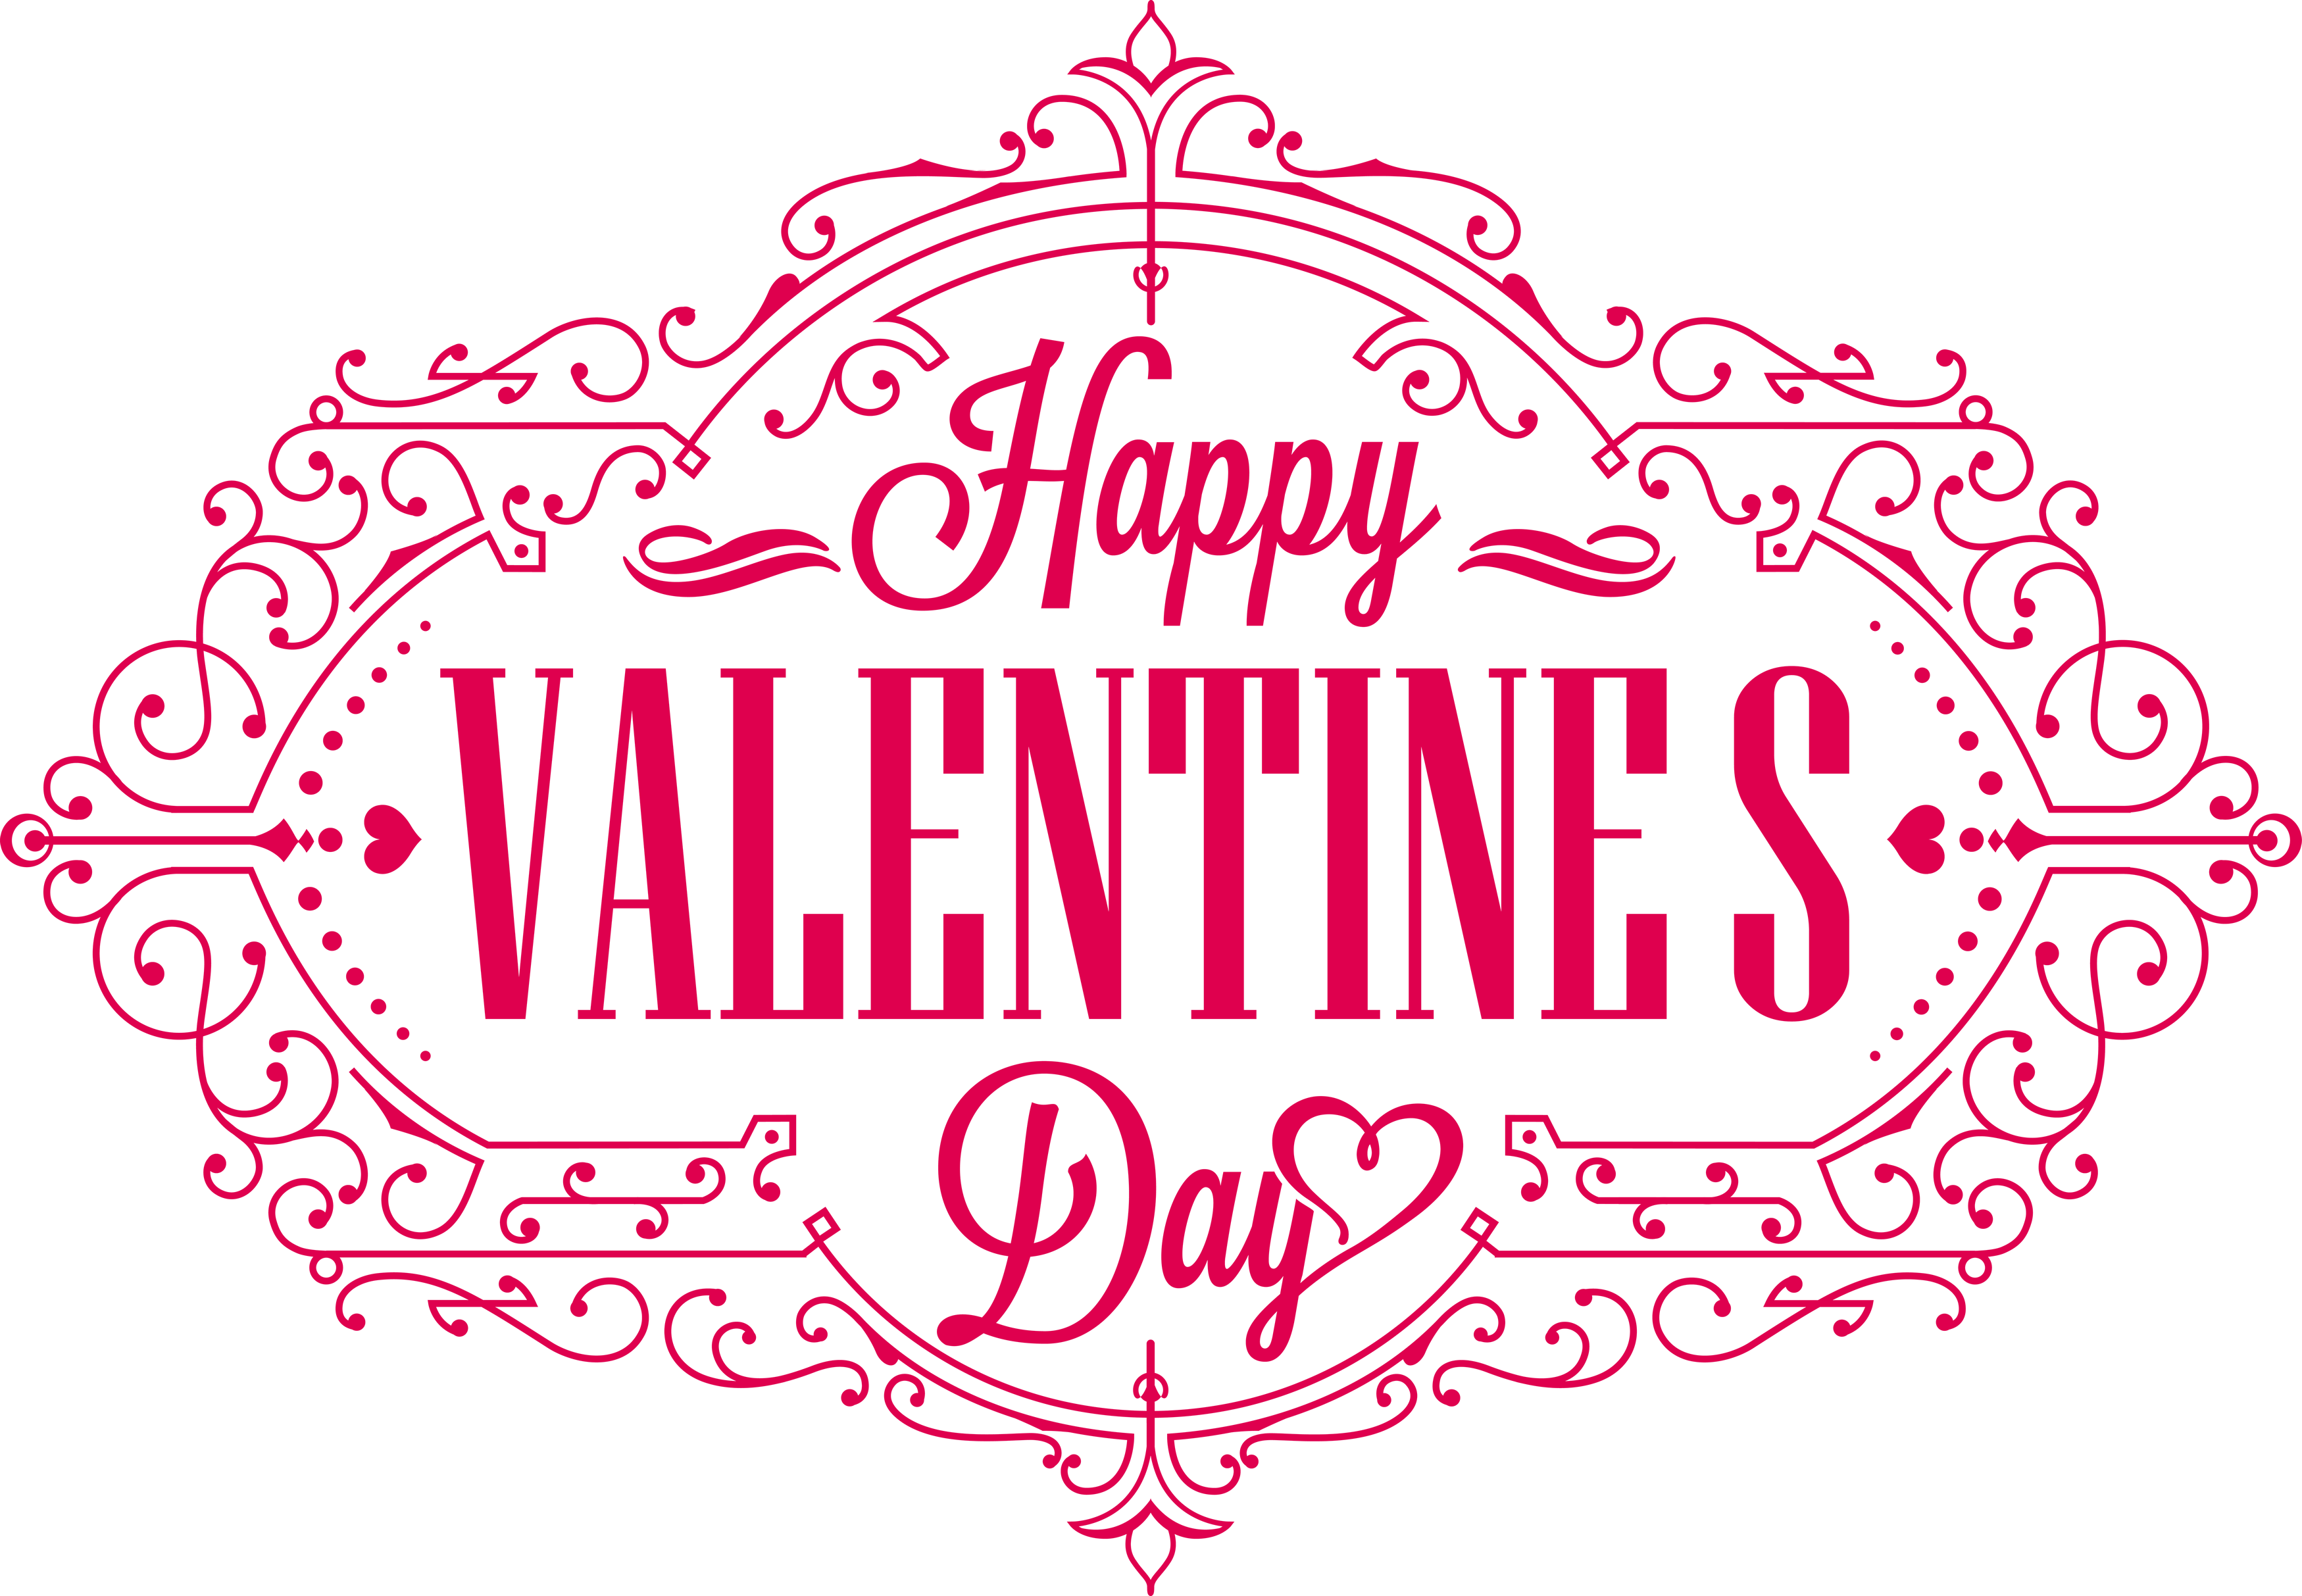 Valentine png hd transparent. Valentines .png graphic library stock